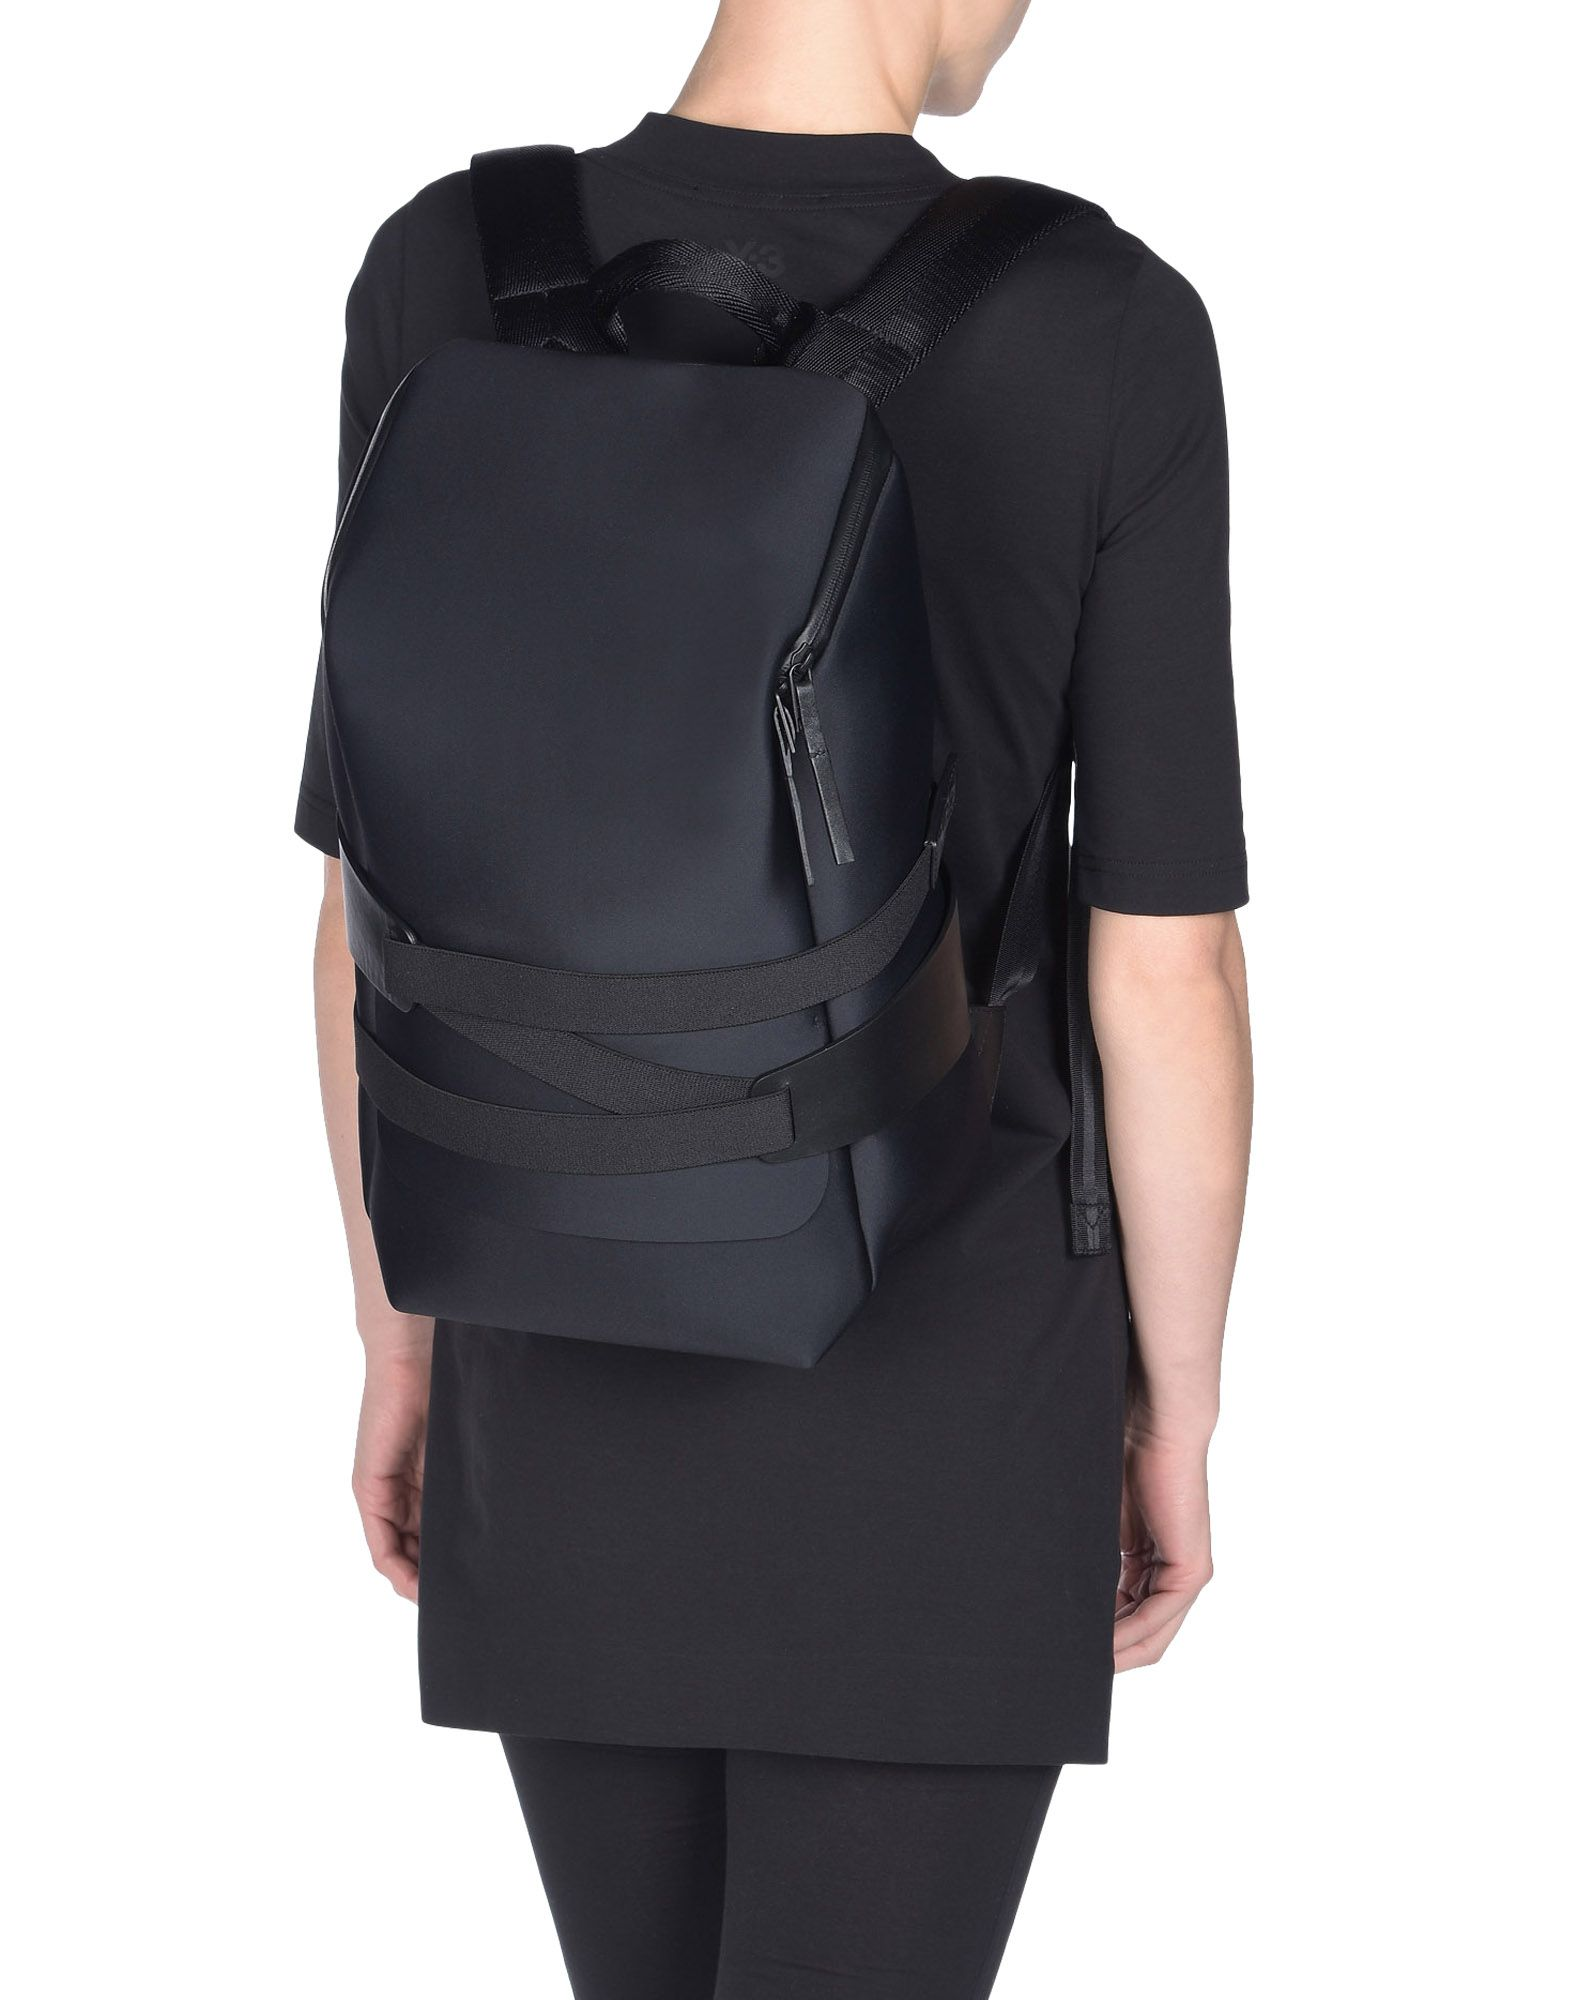 Y-3 QASA TECH BACKPACK BAGS woman Y-3 adidas